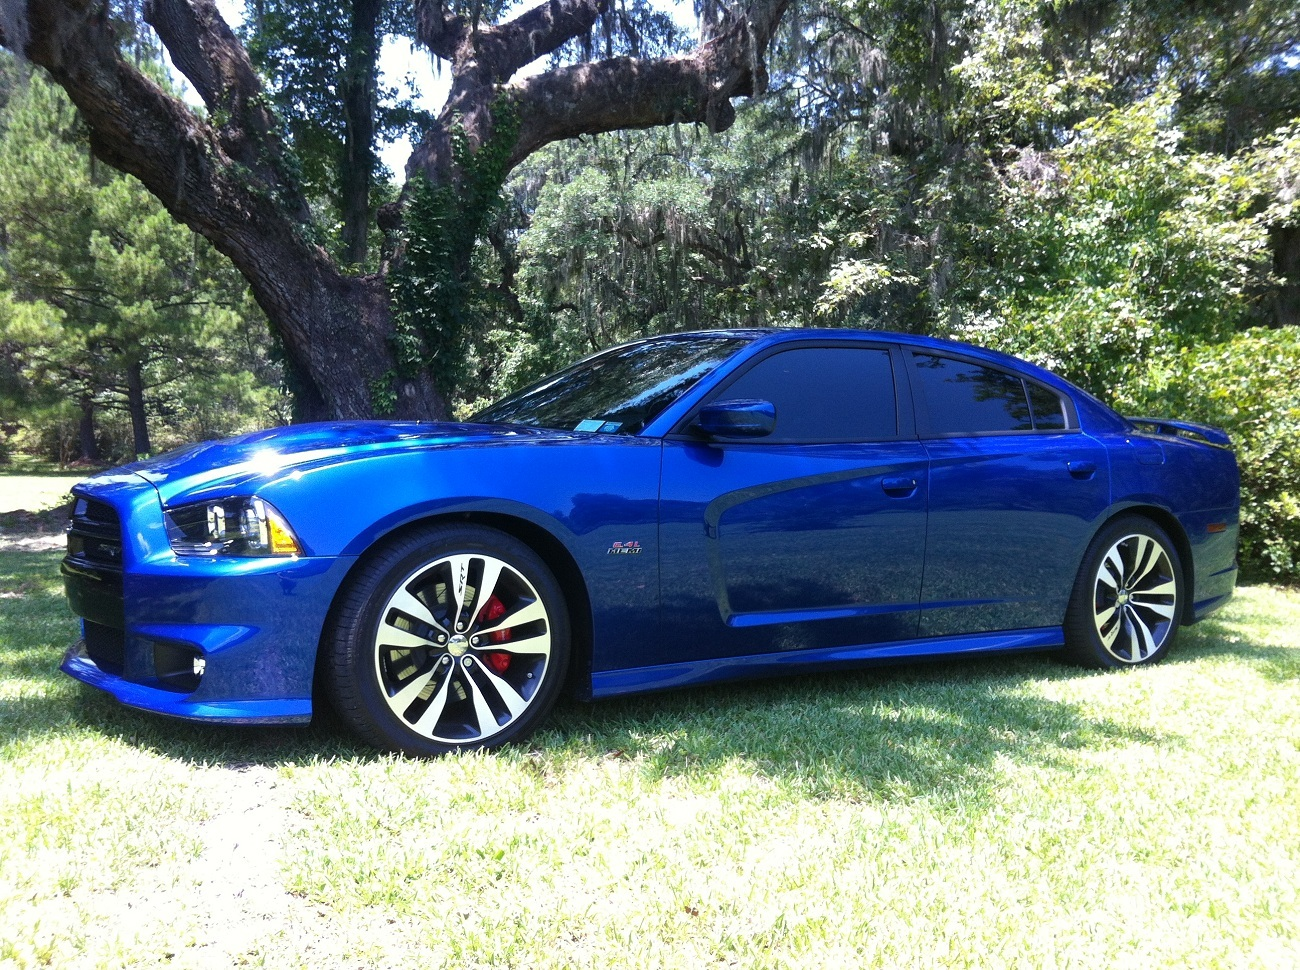 Dodge 08 dodge charger srt8 specs : Stock 2012 Dodge Charger SRT8 1/4 mile trap speeds 0-60 ...